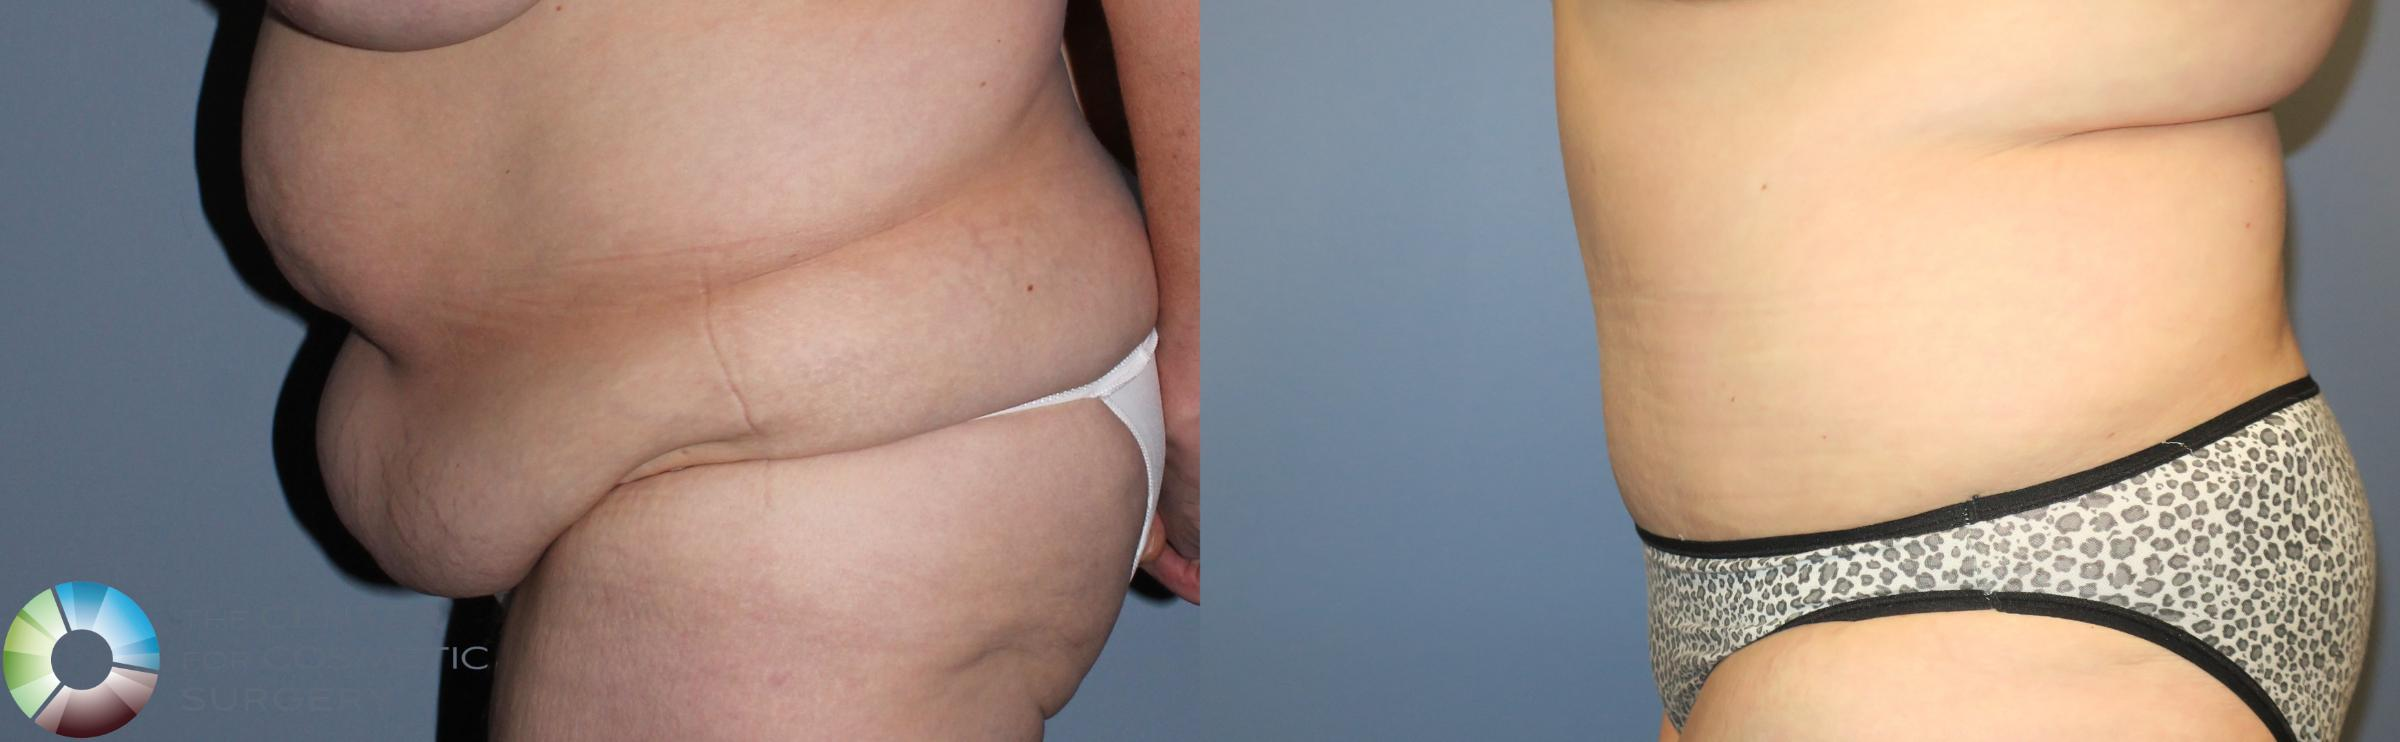 Tummy Tuck Case 780 Before & After View #3 | Golden, CO | The Center for Cosmetic Surgery